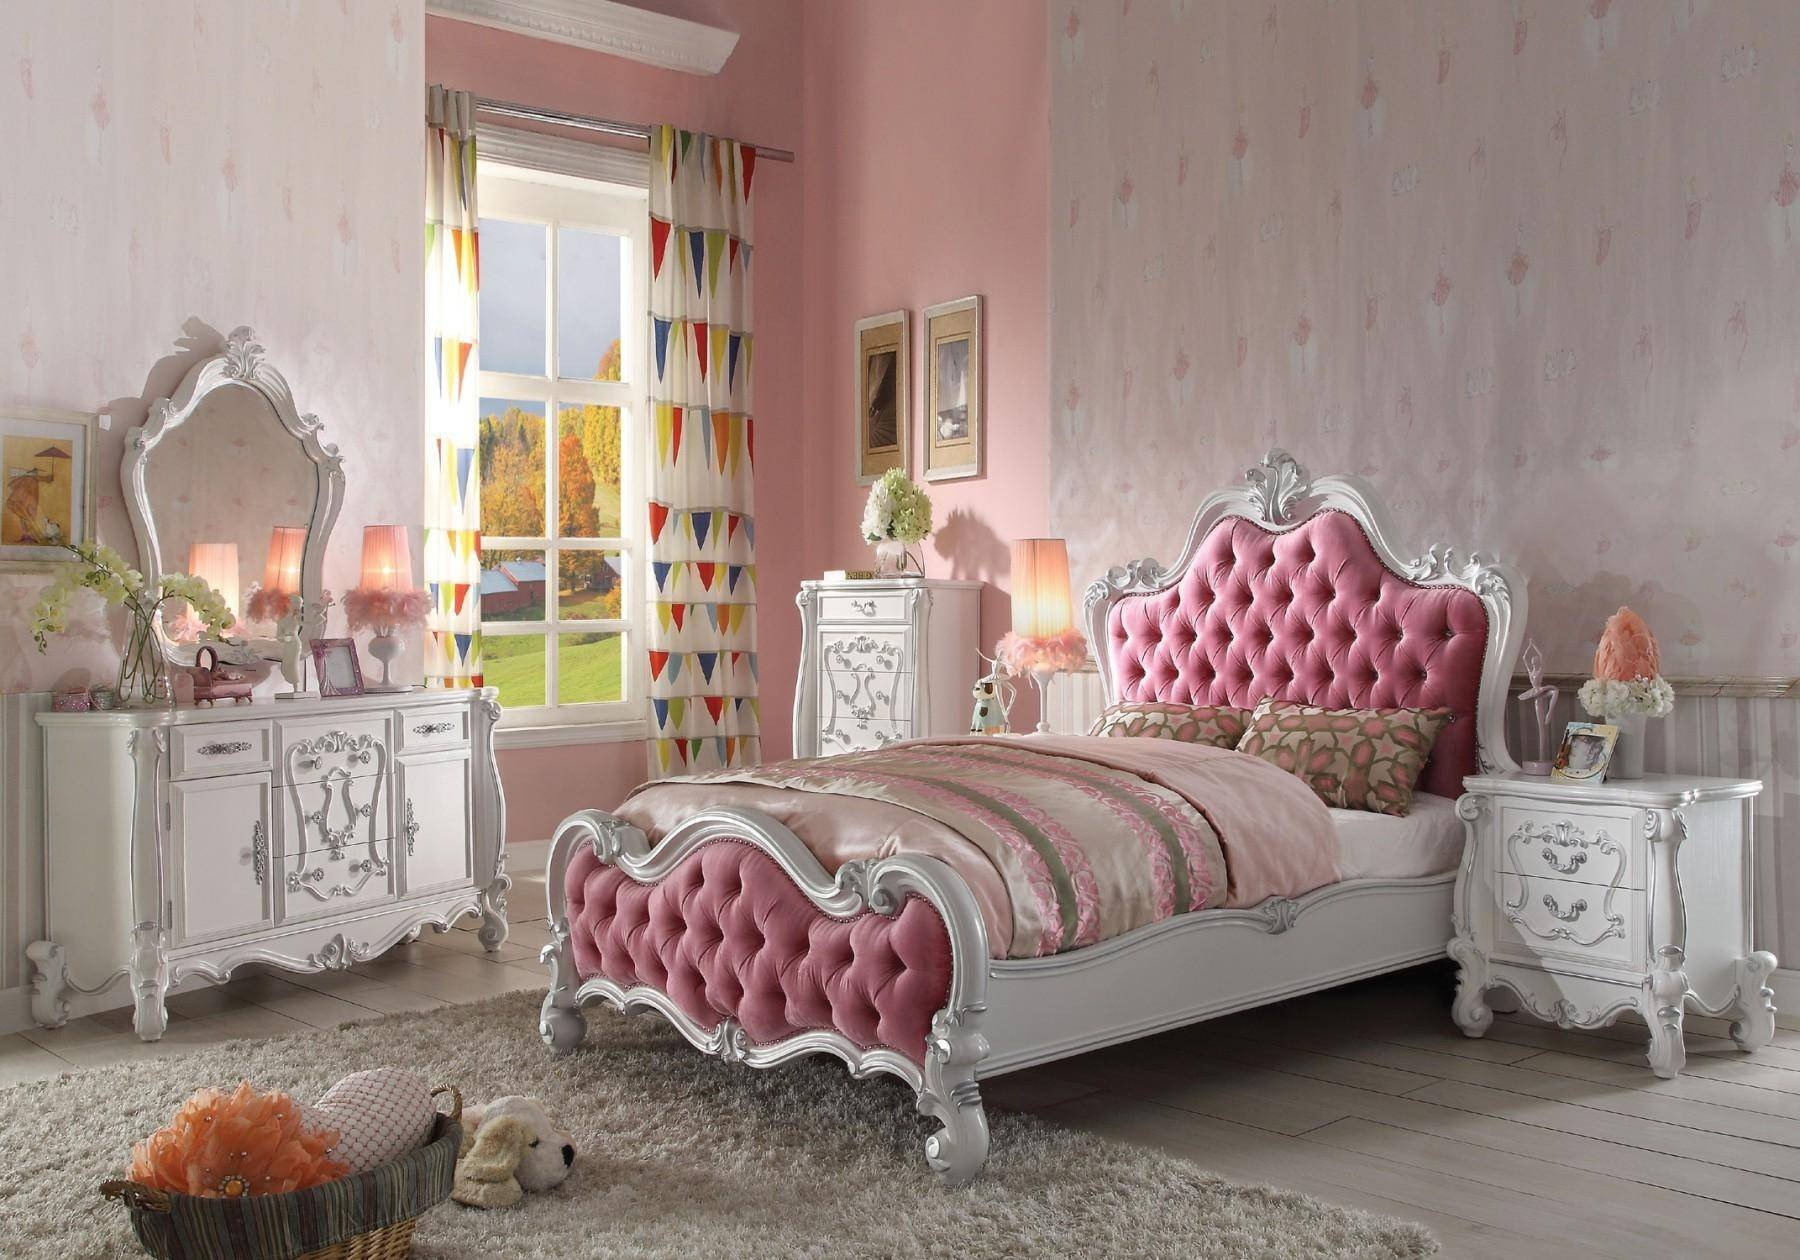 Pink and White Bedroom Lovely soflex Classic andria Kids Queen Bedroom Set 4pcs Antique